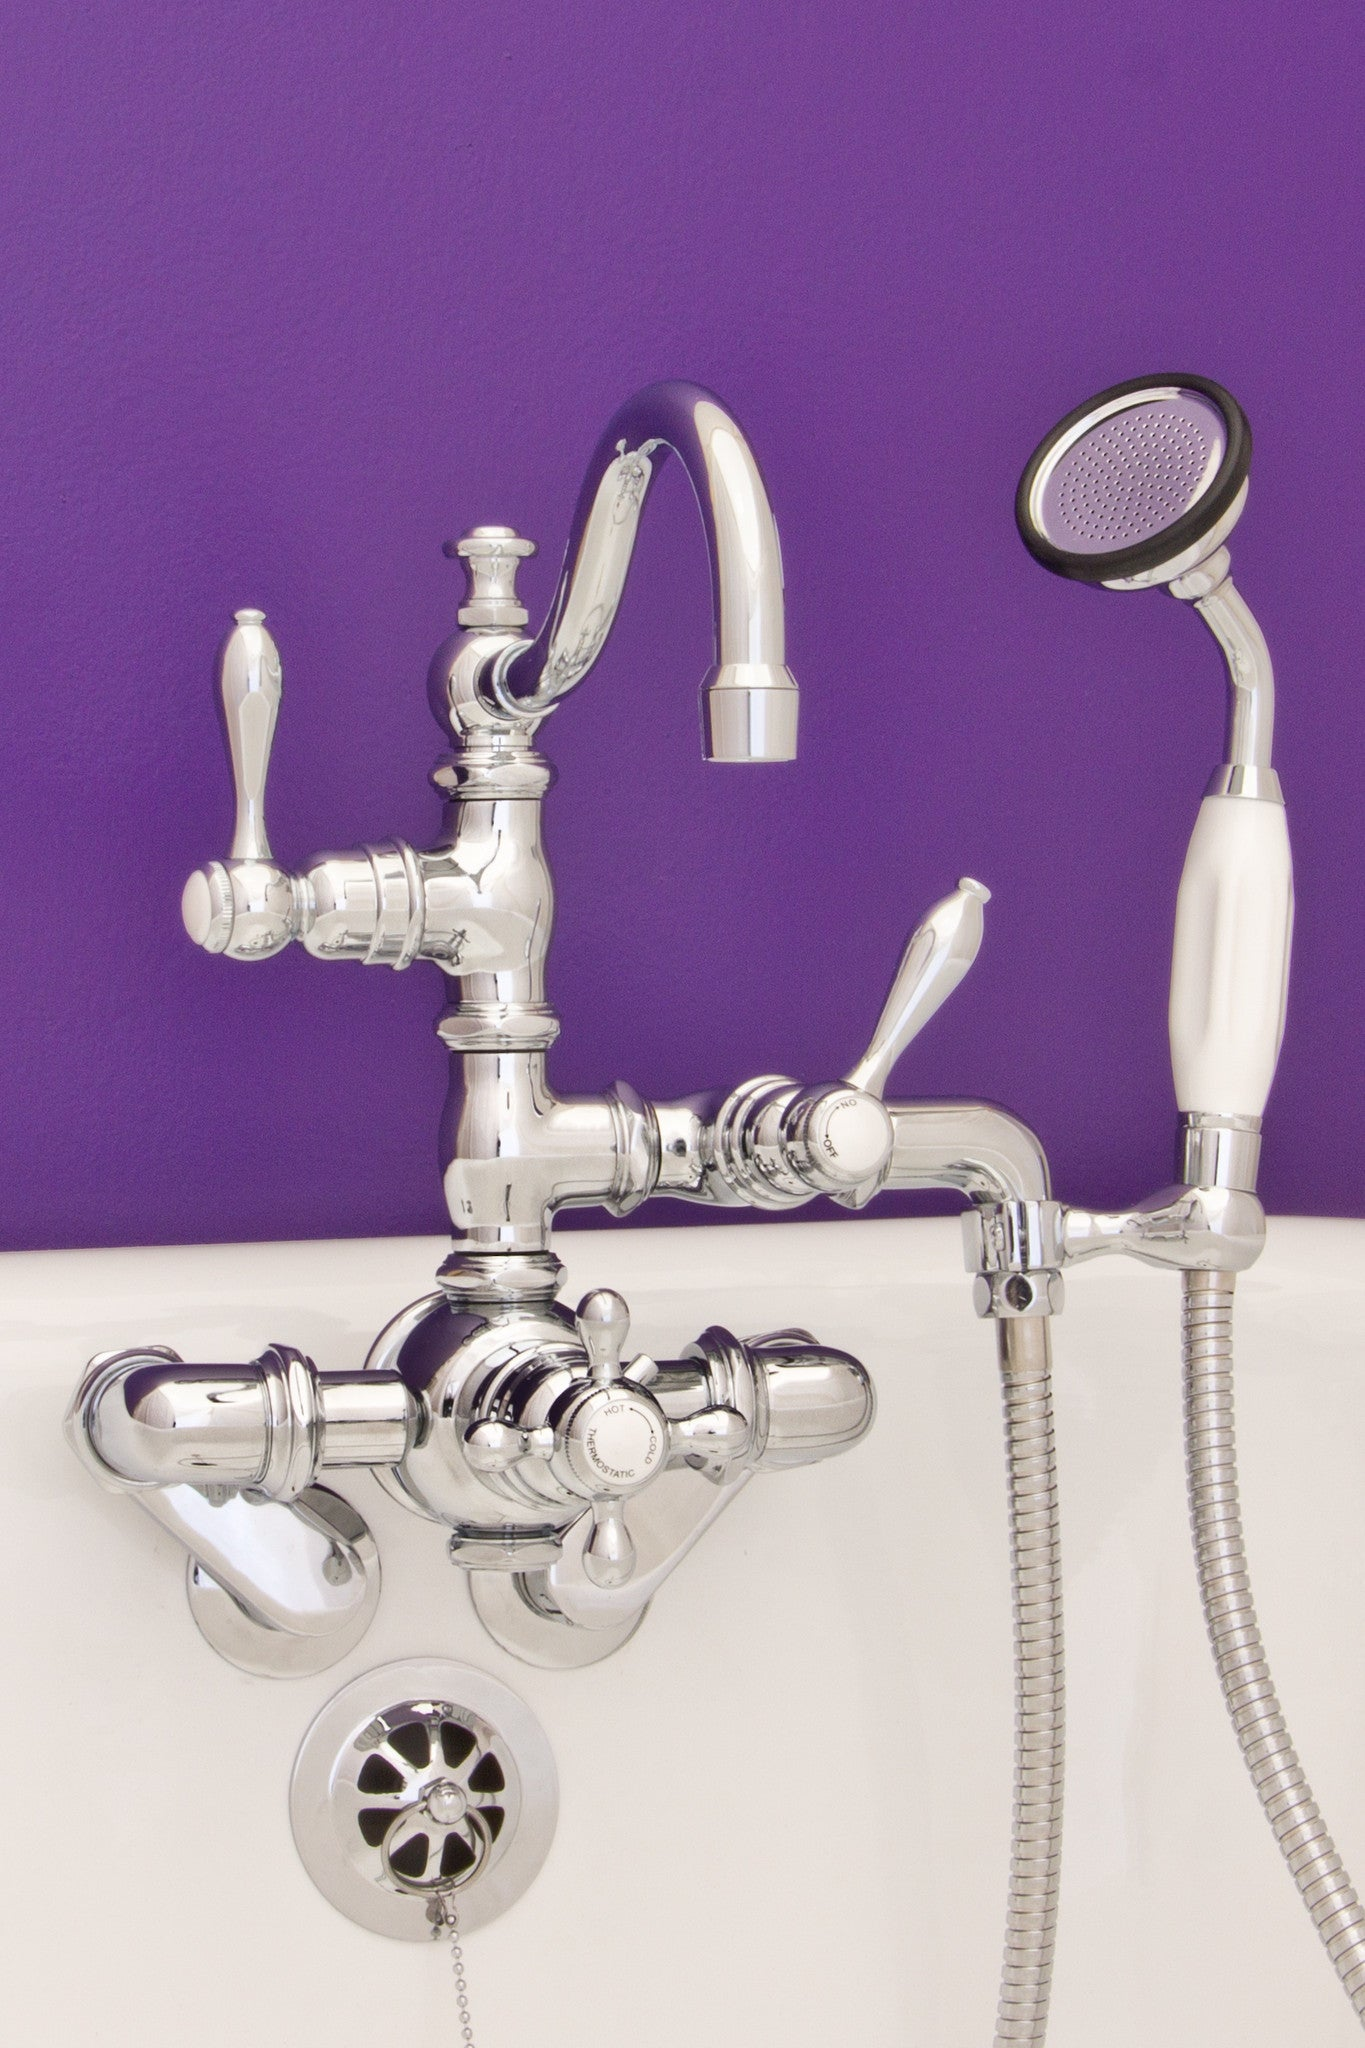 Thermostatic Leg Tub Faucet with Handshower